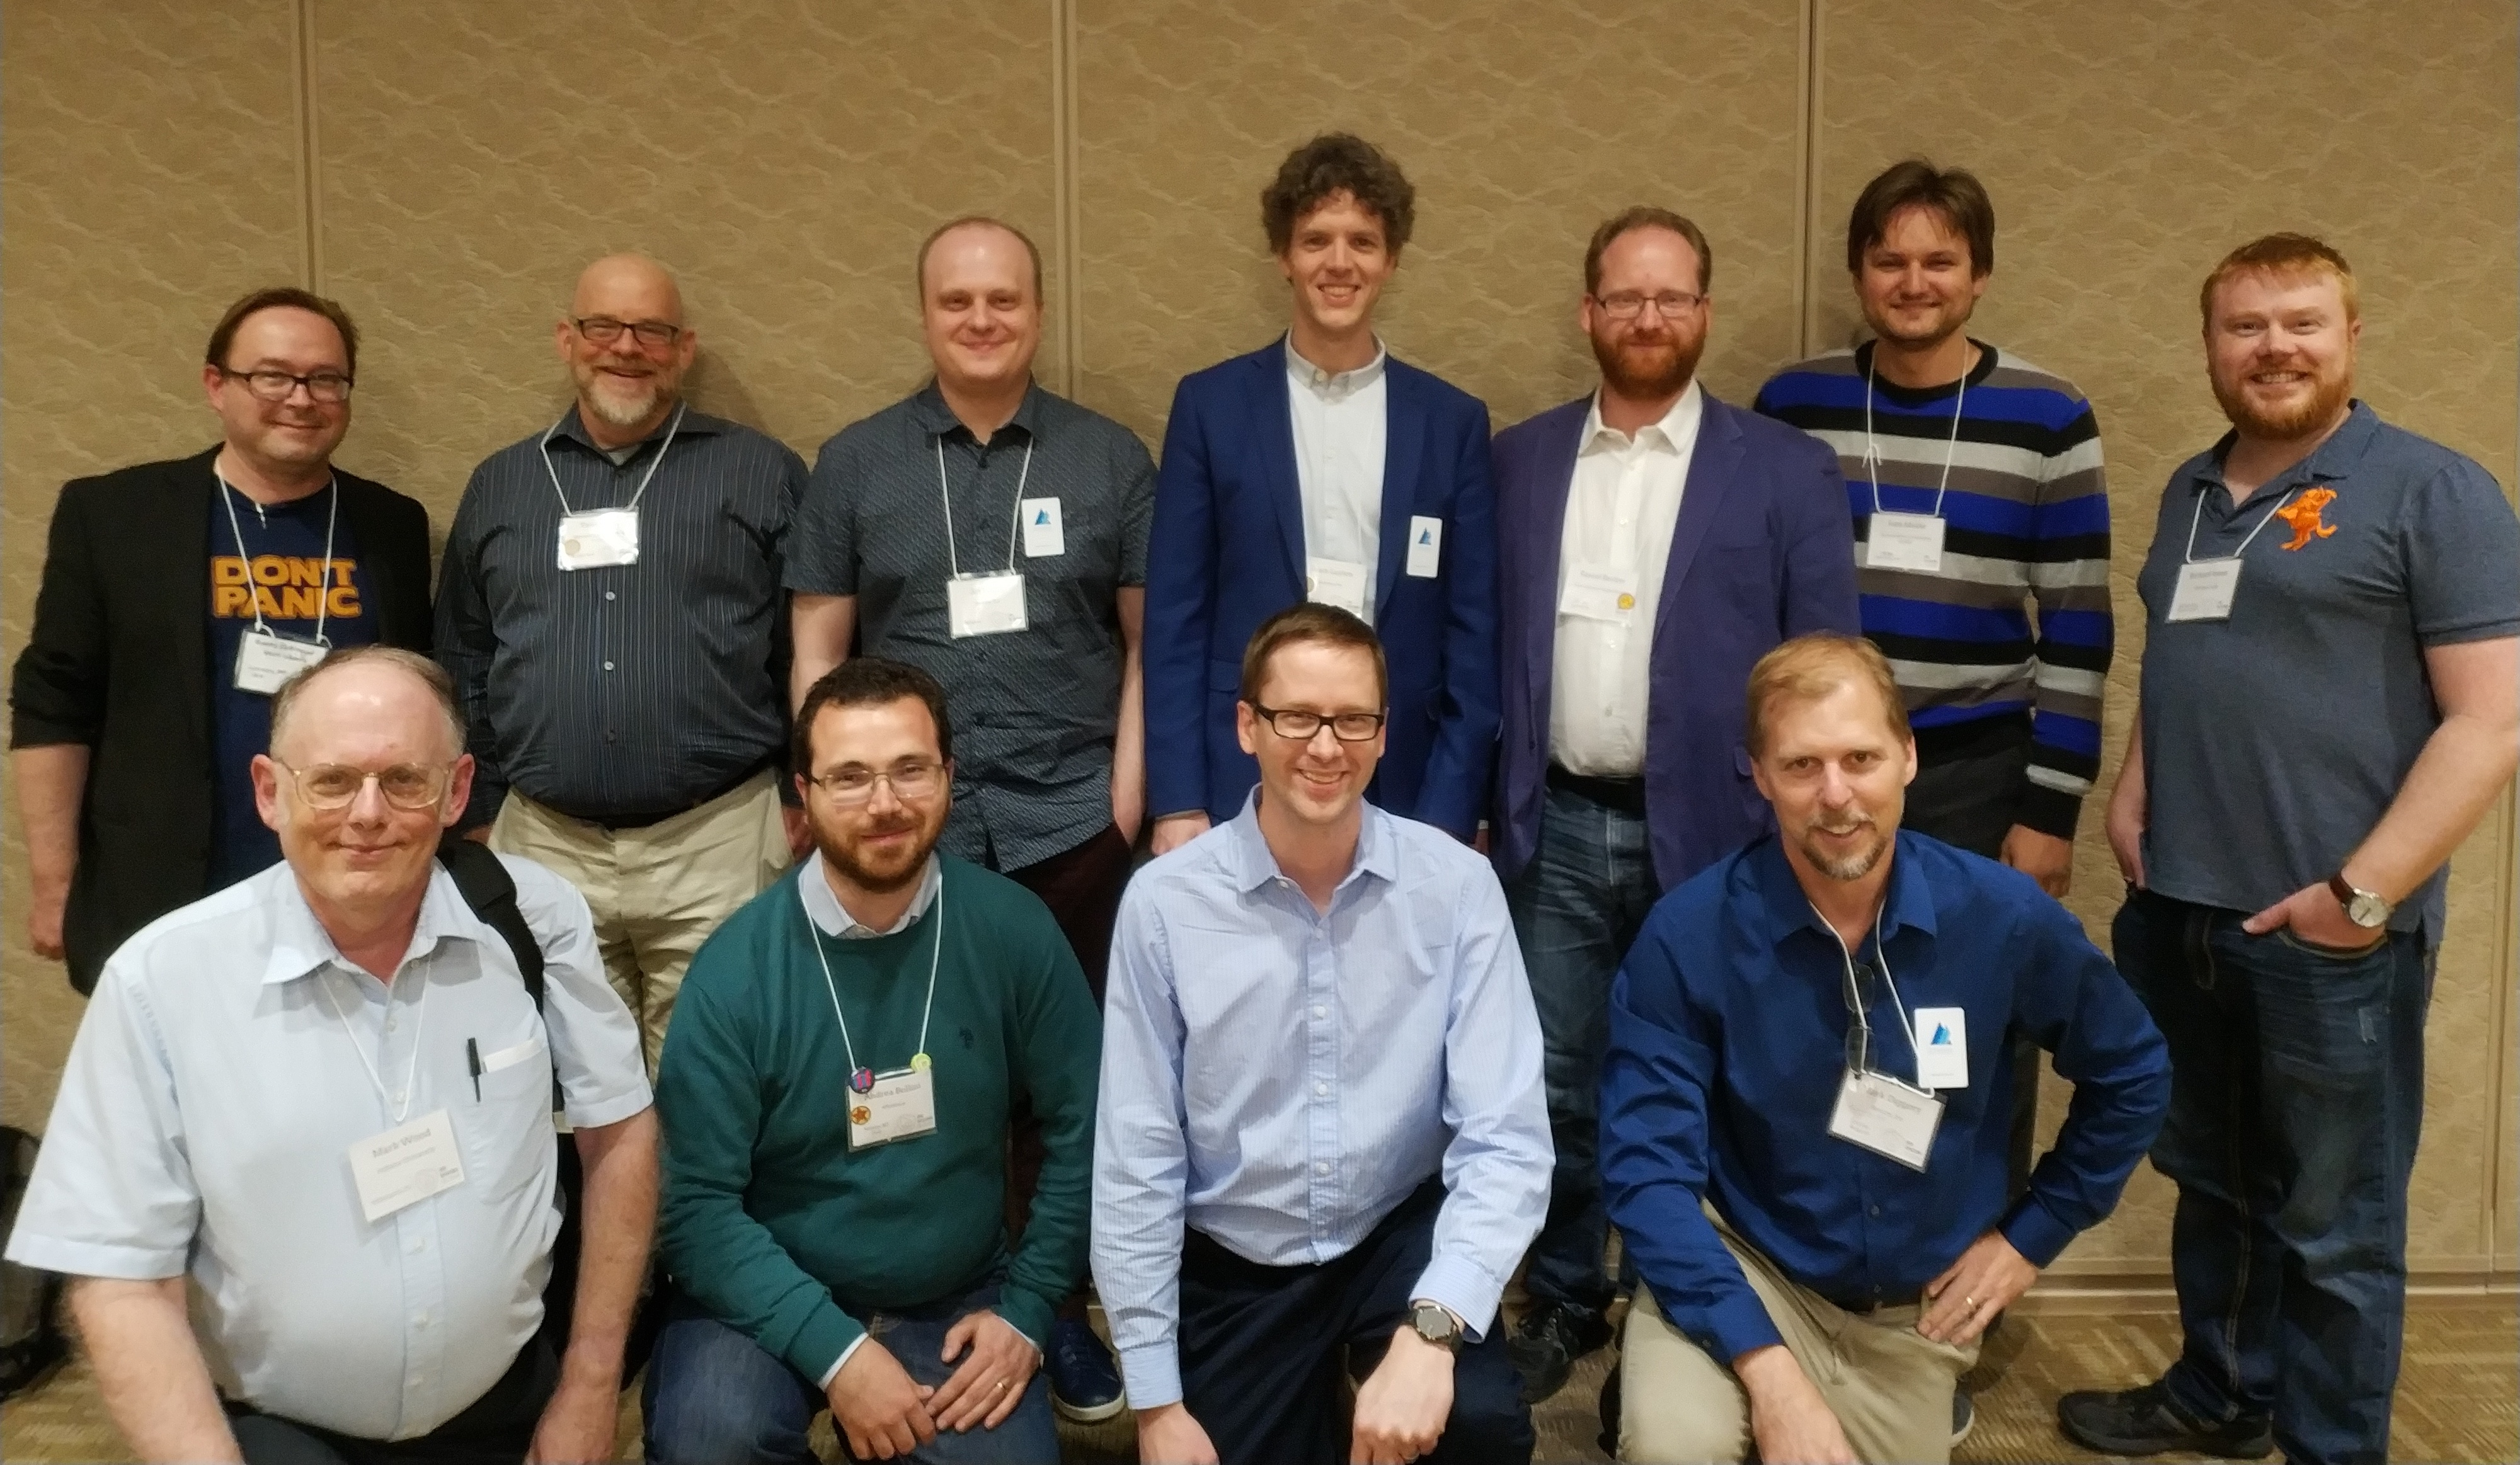 DSpace committers at the 2018 Open Repositories conference in Bozeman Montana